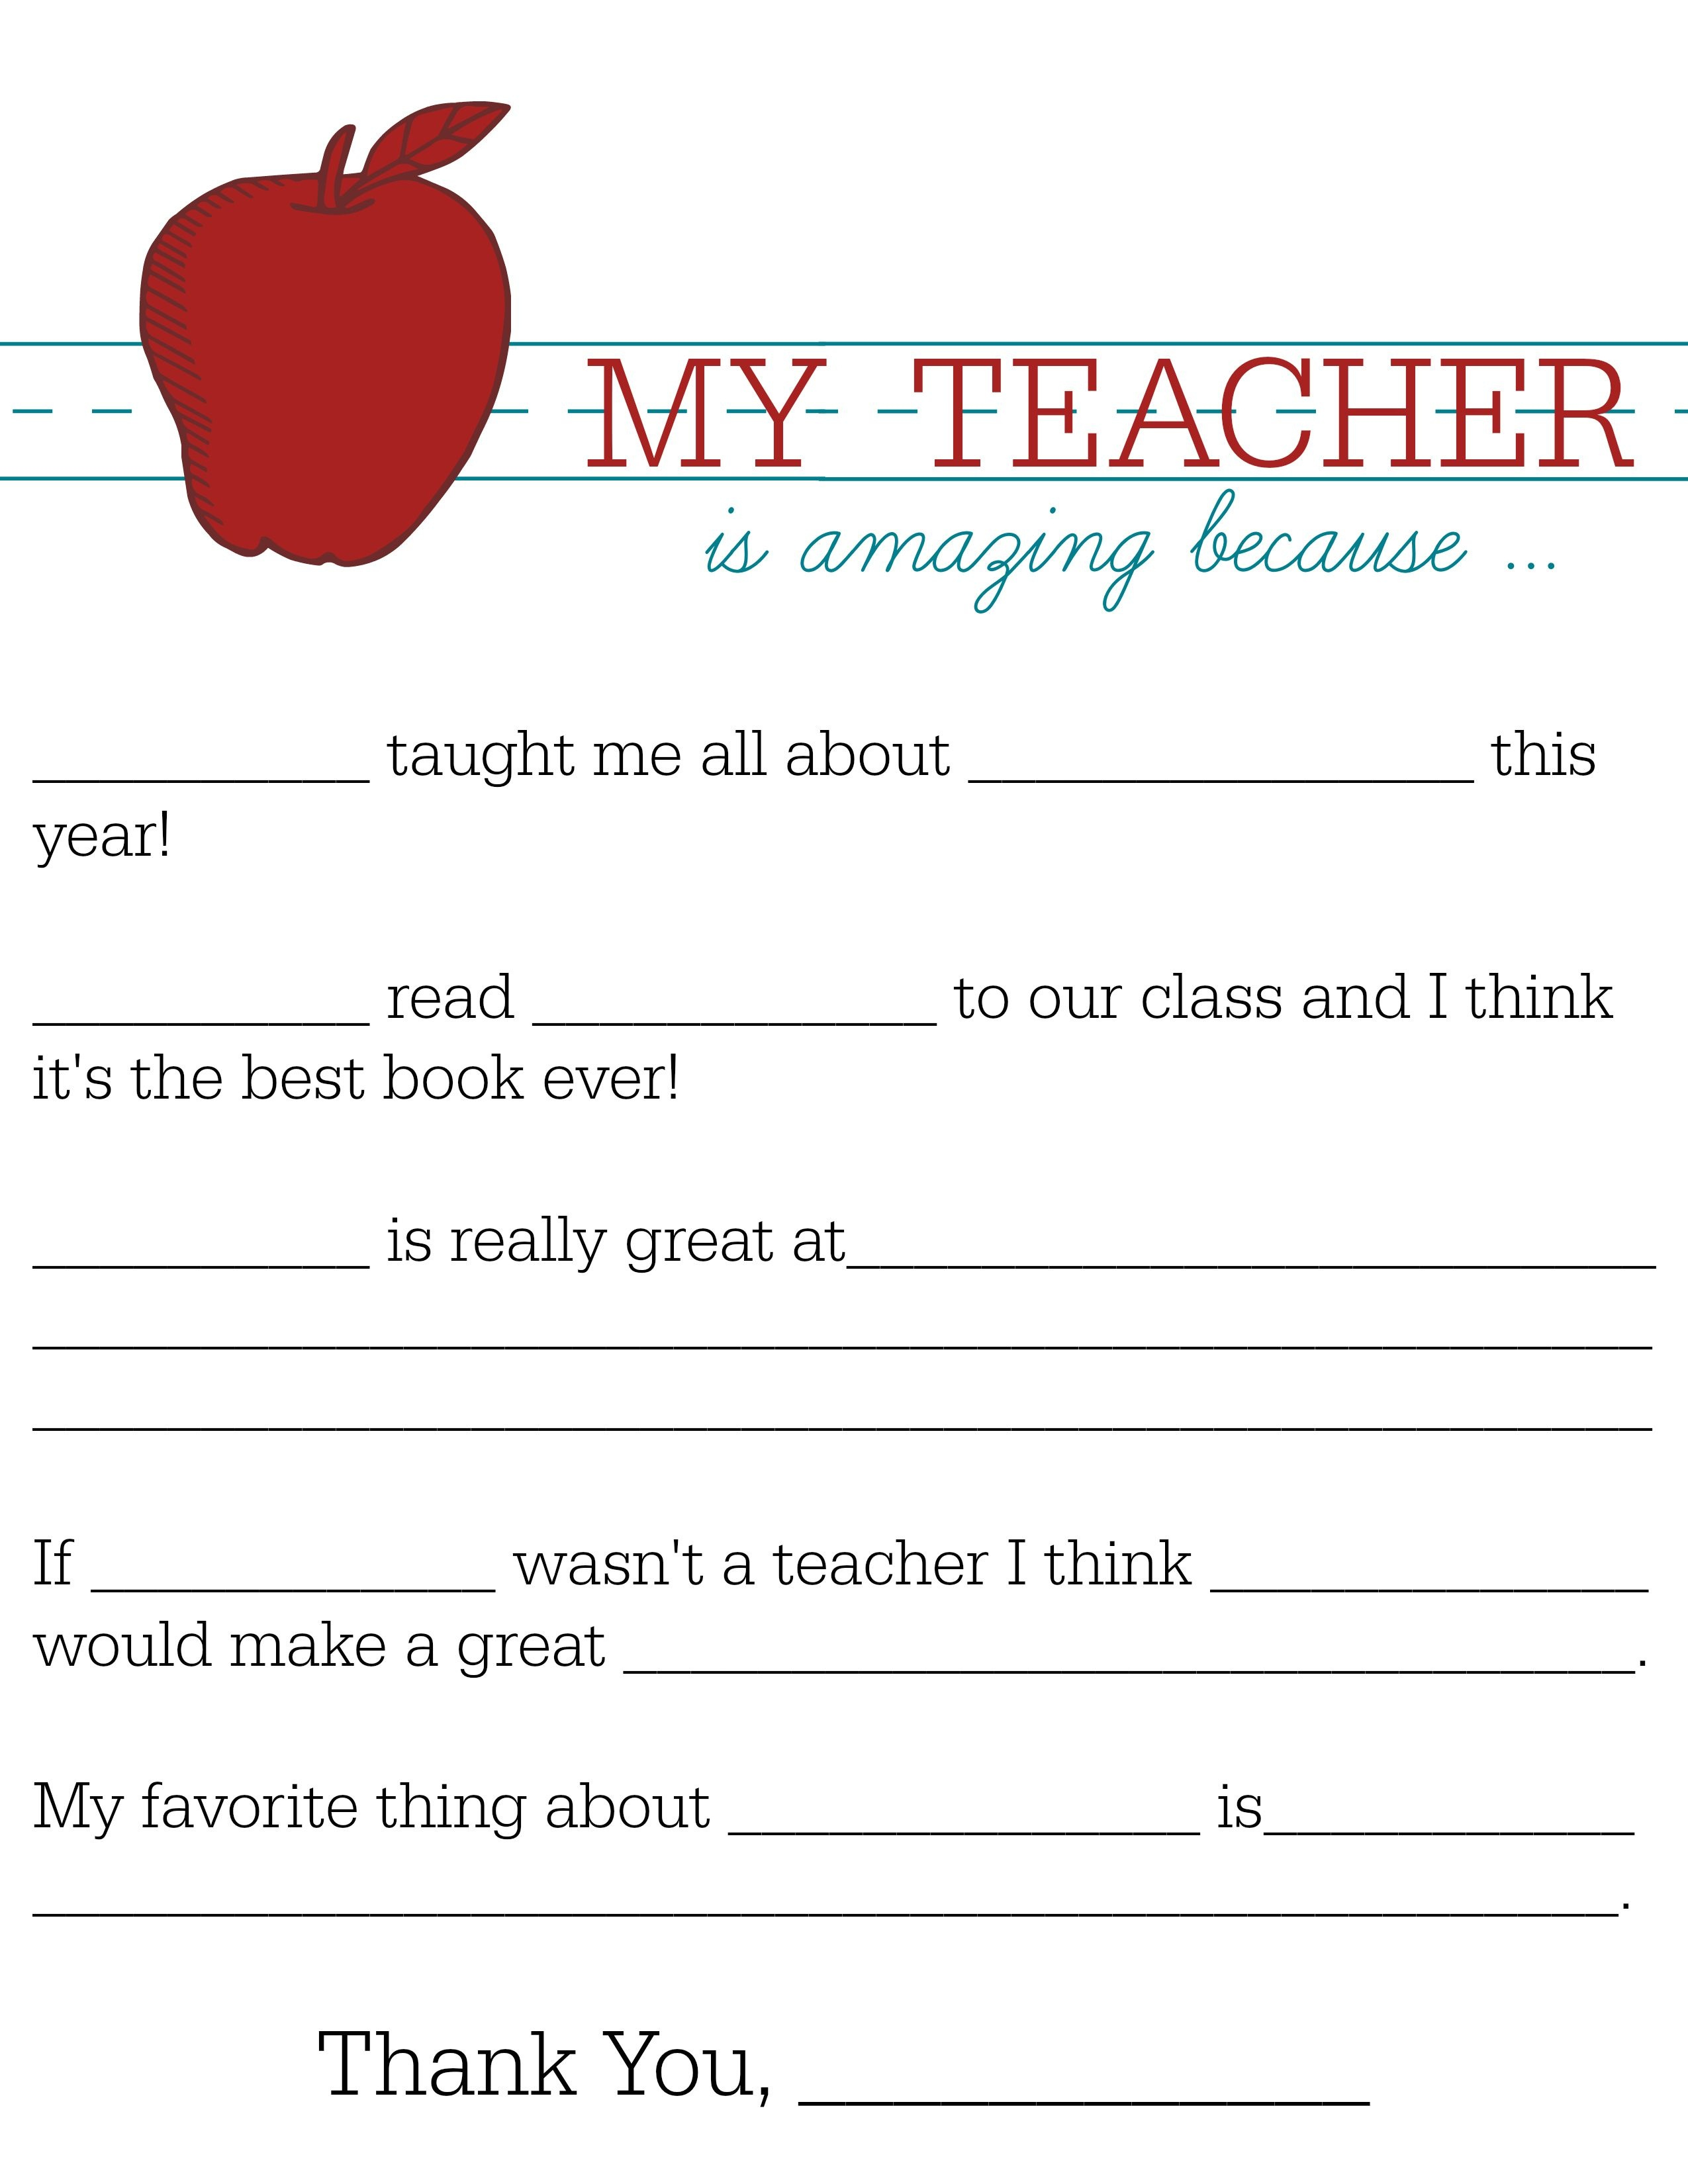 All About My Teacher | Parents: Raise A Reader Blog | Teacher - All About My Teacher Free Printable